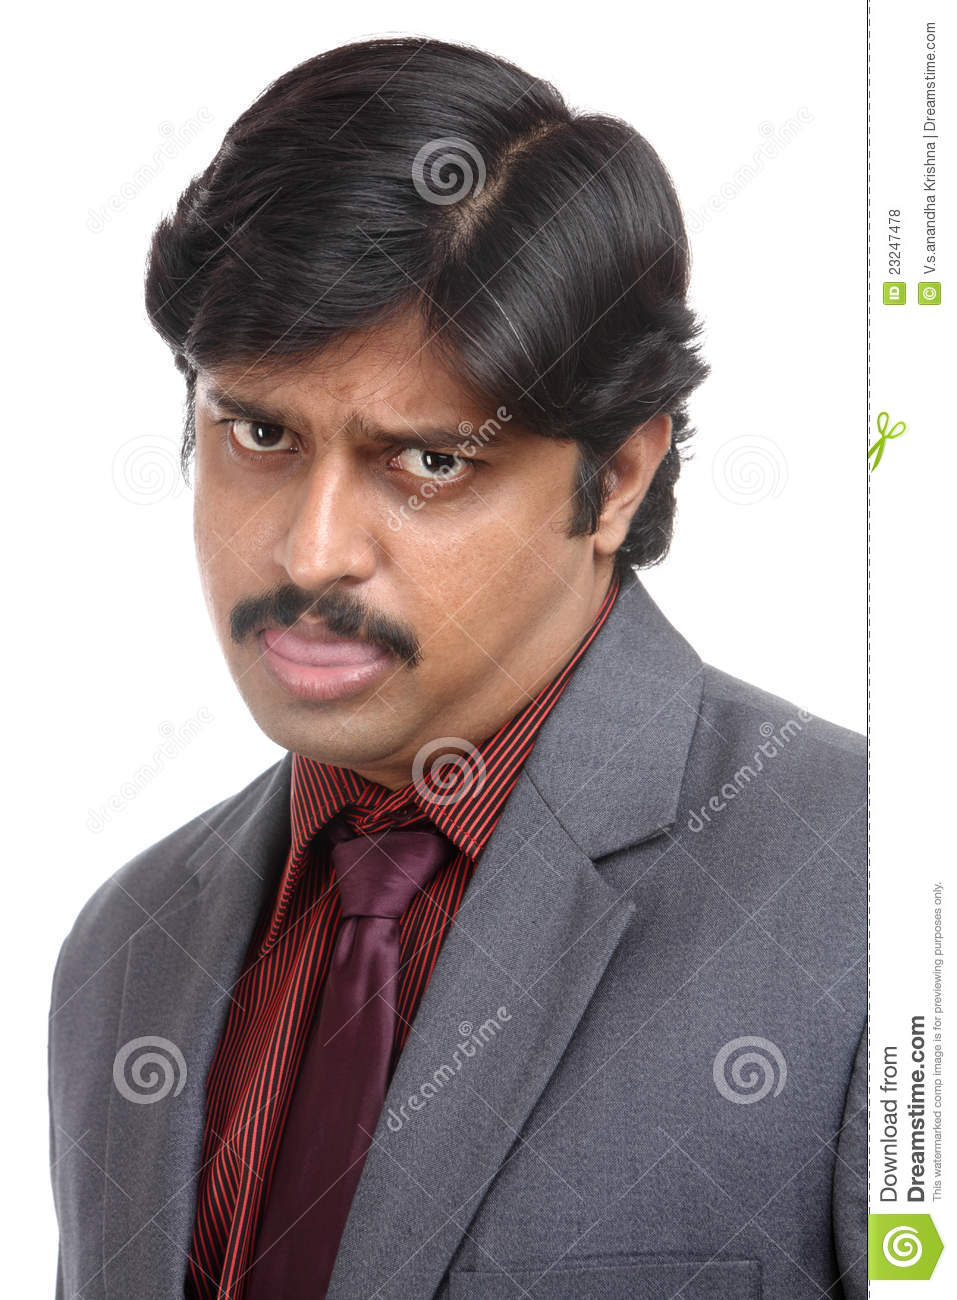 starring-angry-indian-business-man-portr